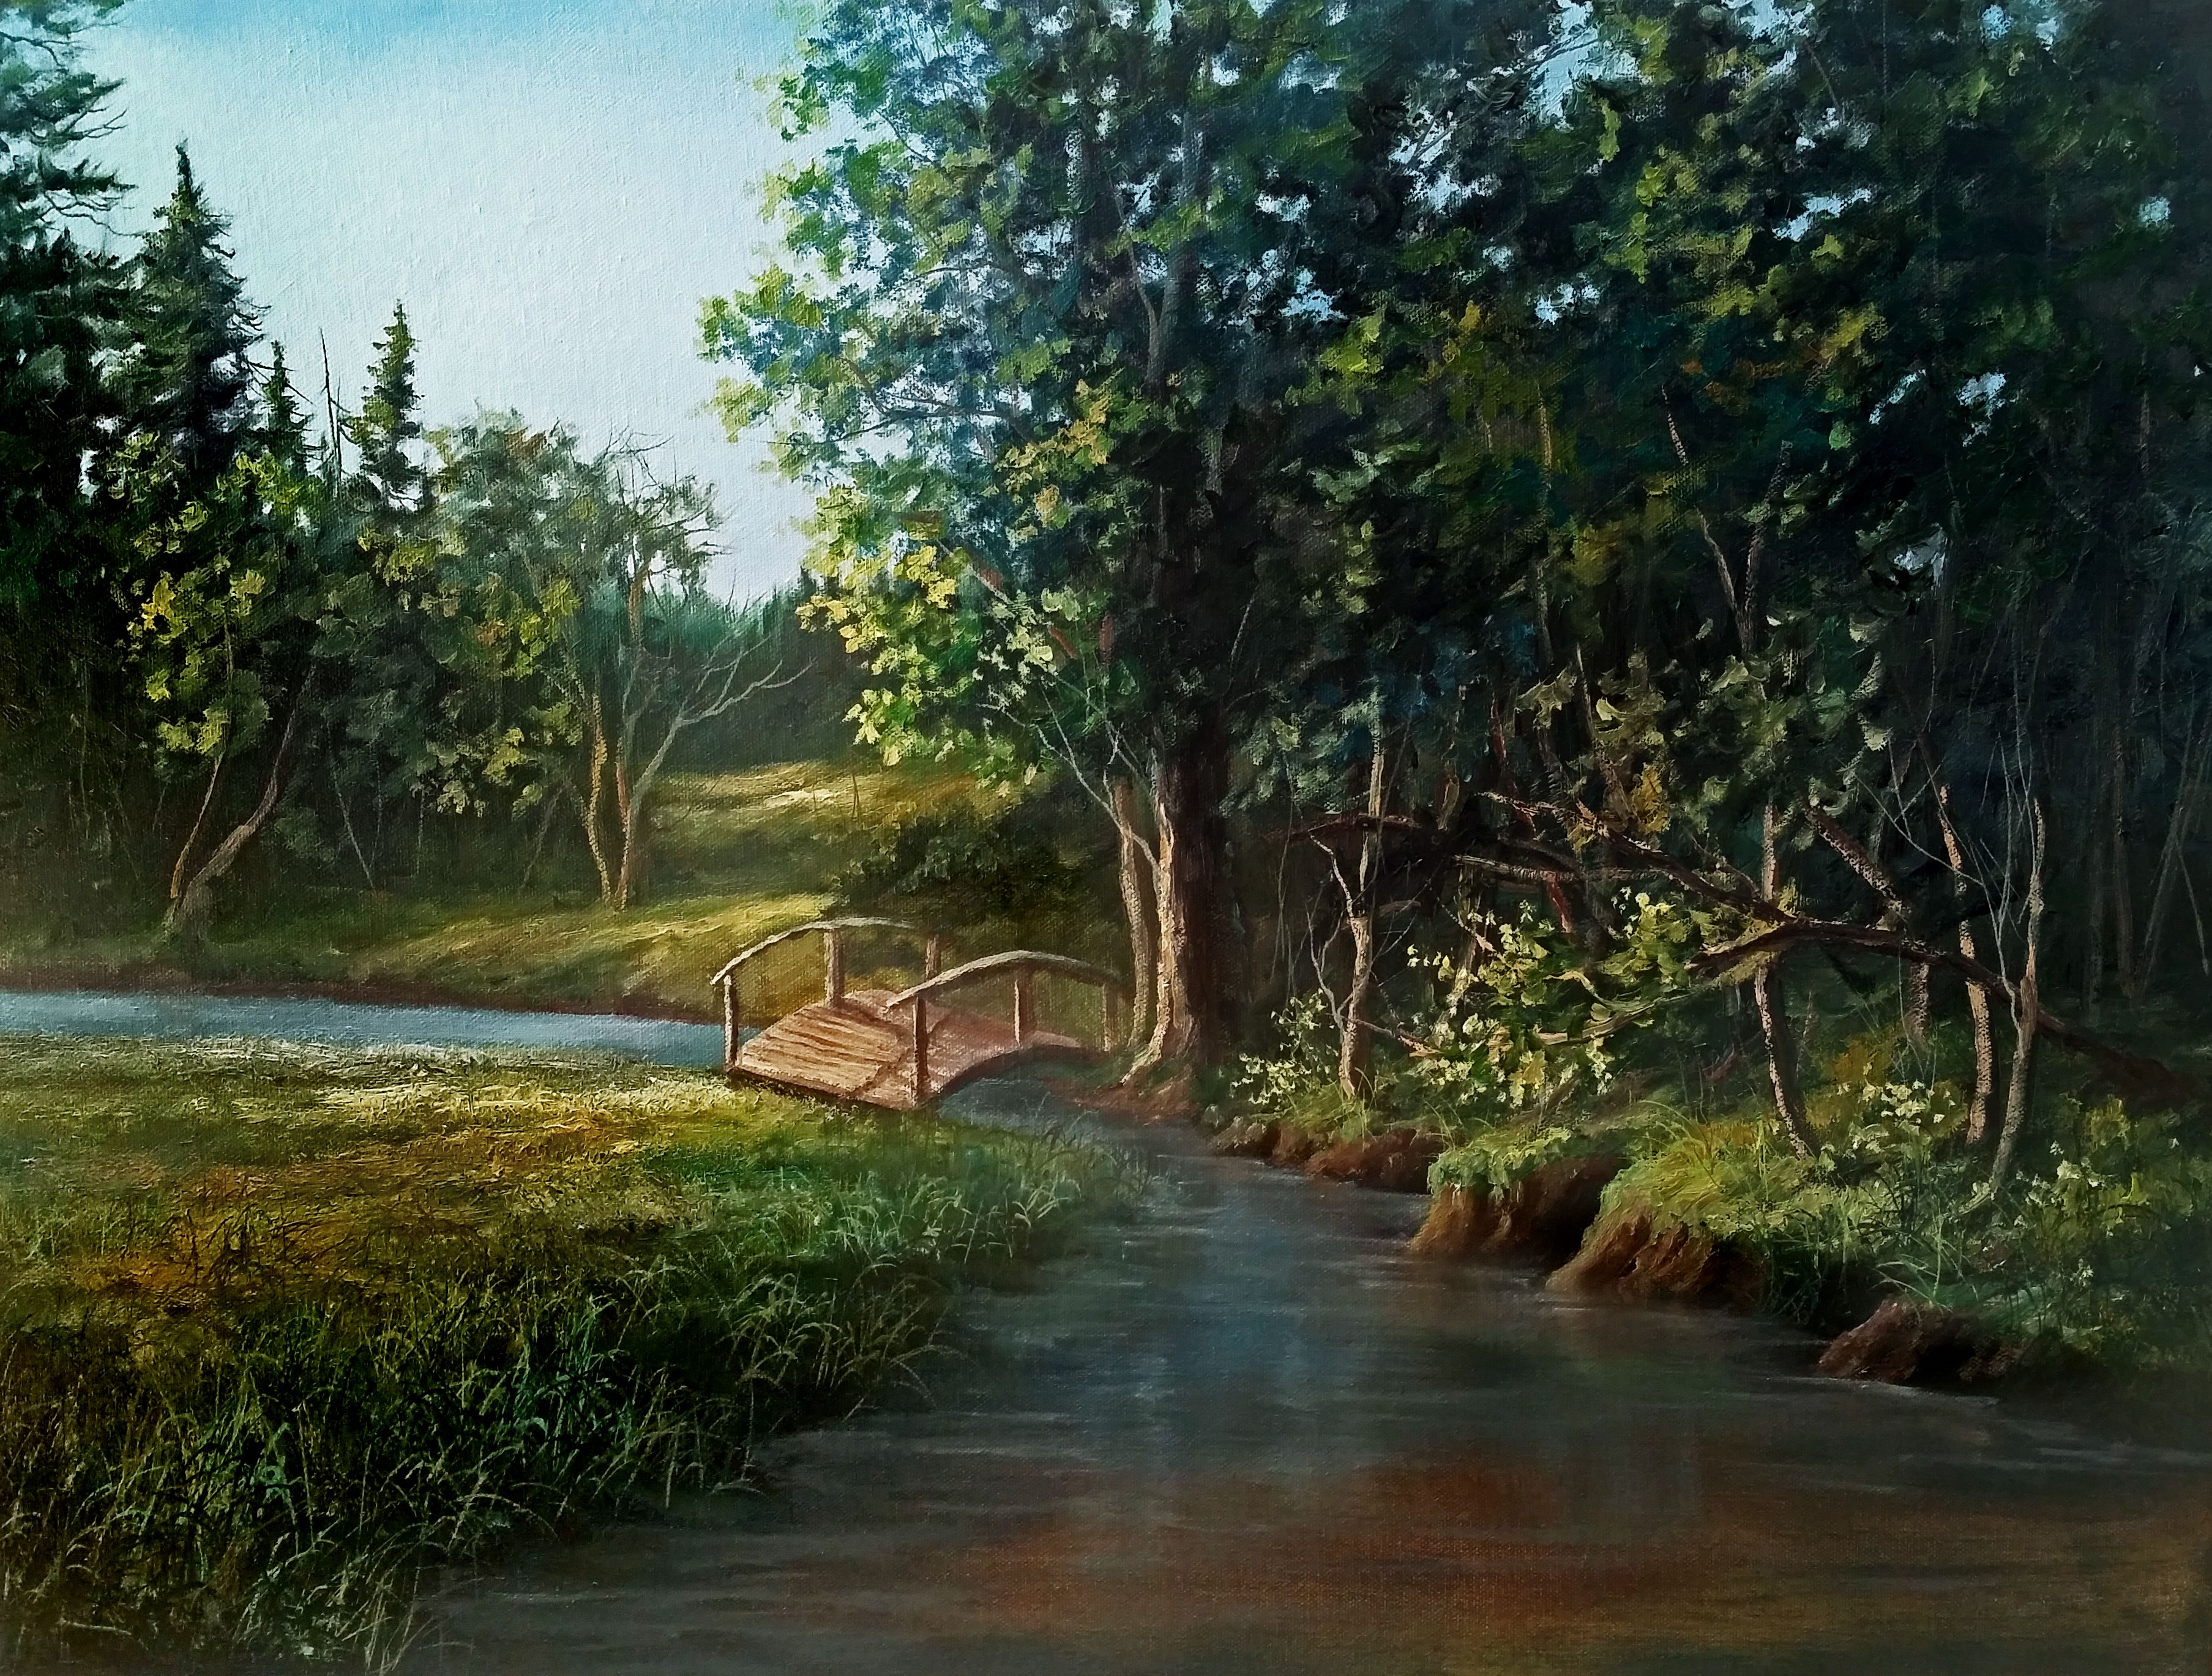 Bridge Over The Creek Oil Painting By Kevin Hill Watch Short Oil Painting Lessons On Youtube Kevinoilp Kevin Hill Paintings Landscape Oil Painting Landscape